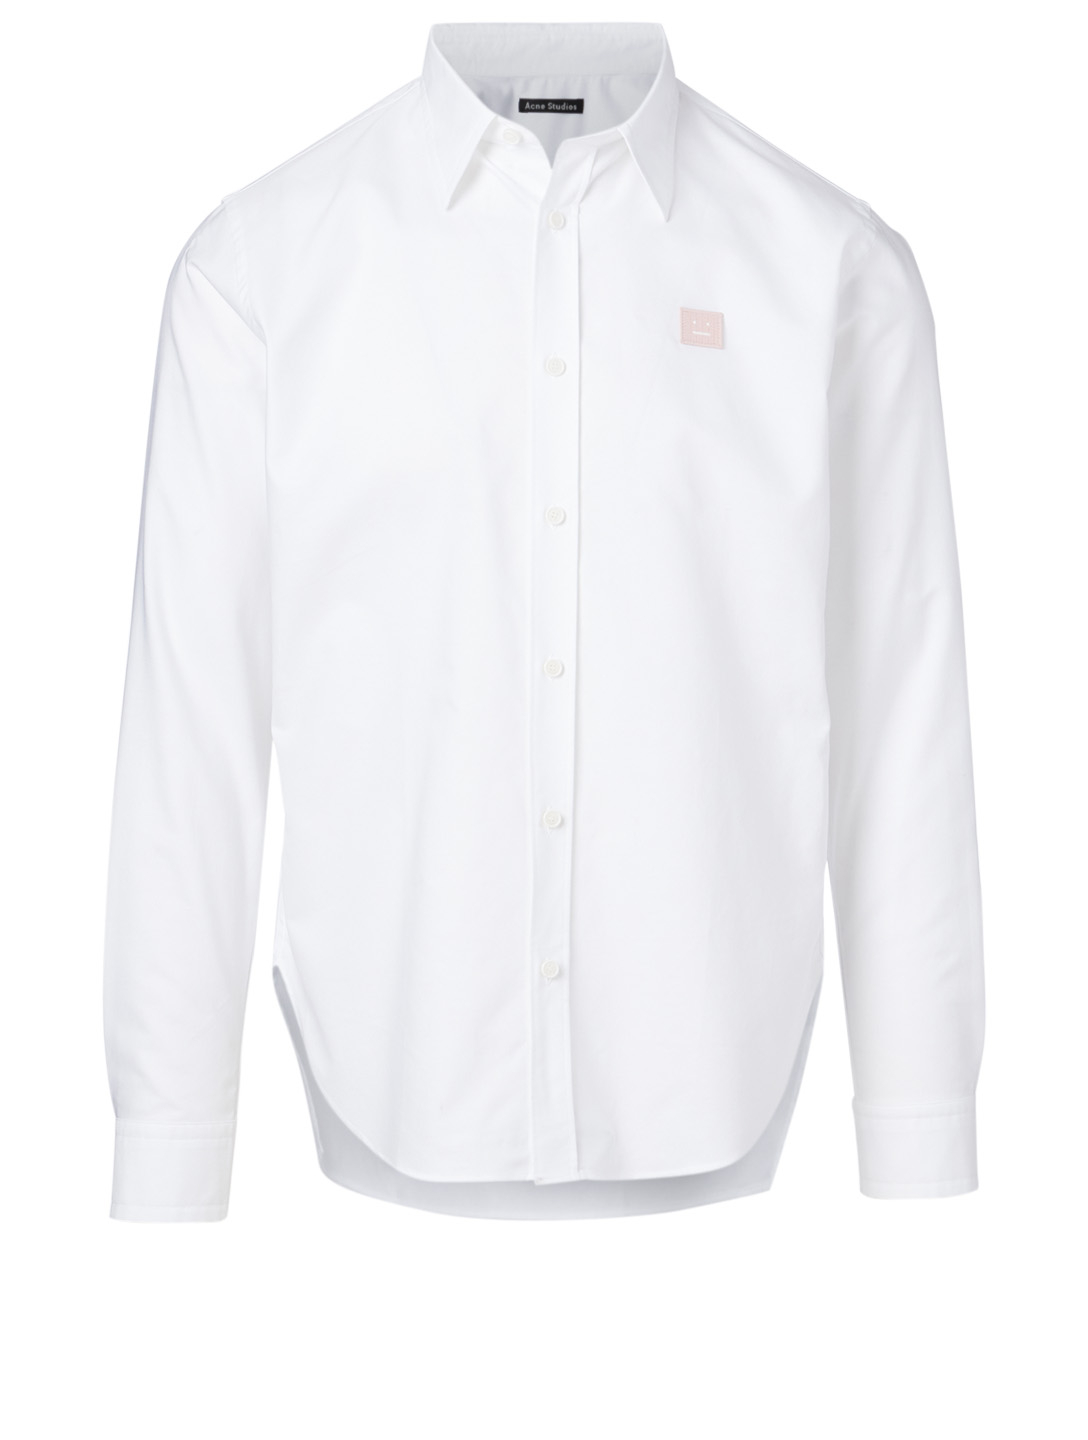 ACNE STUDIOS Seville Face Cotton Shirt Men's White